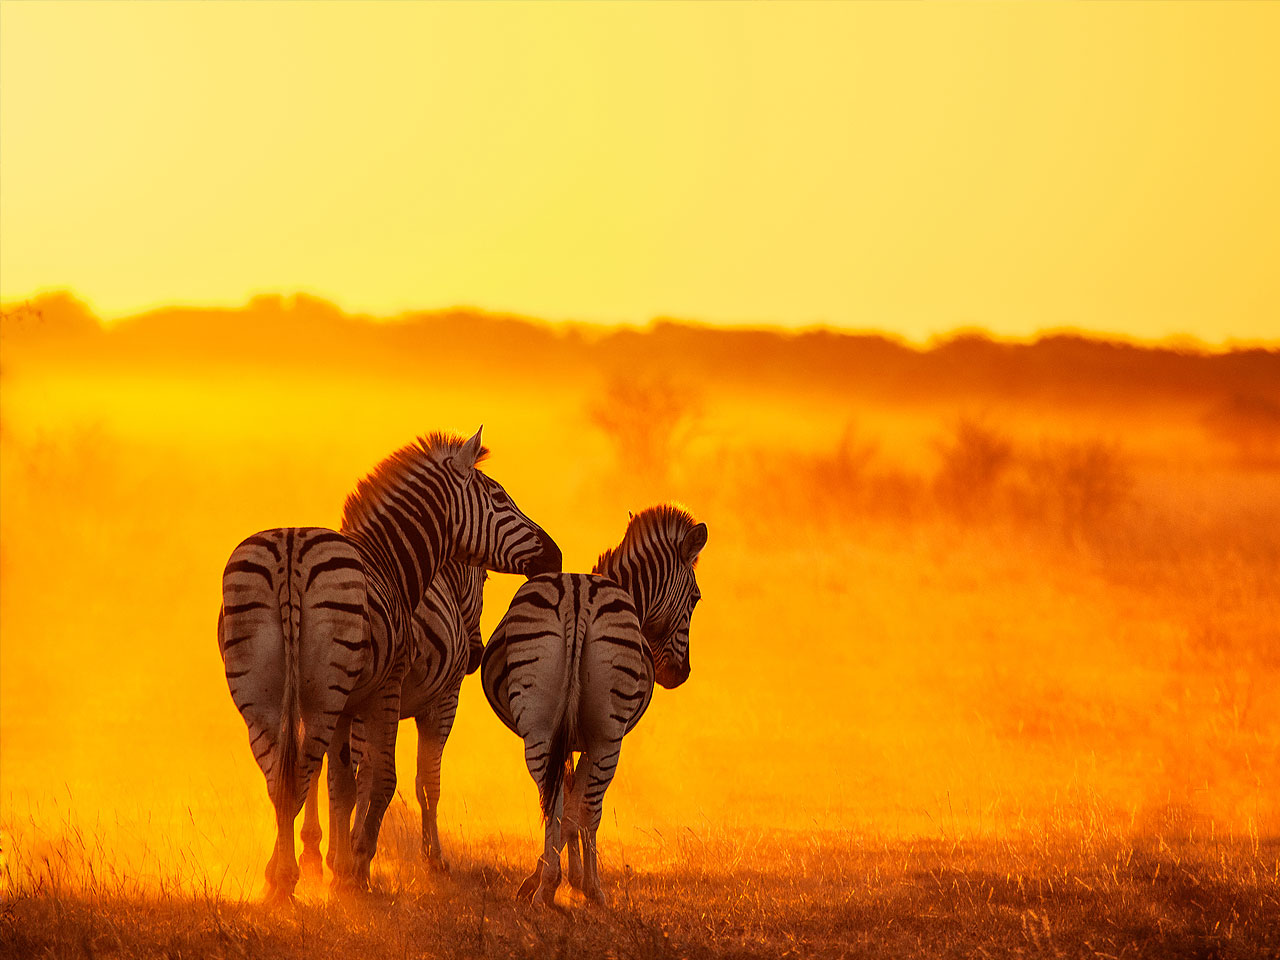 A close up of three zebras walking away in the yellow sunrise.